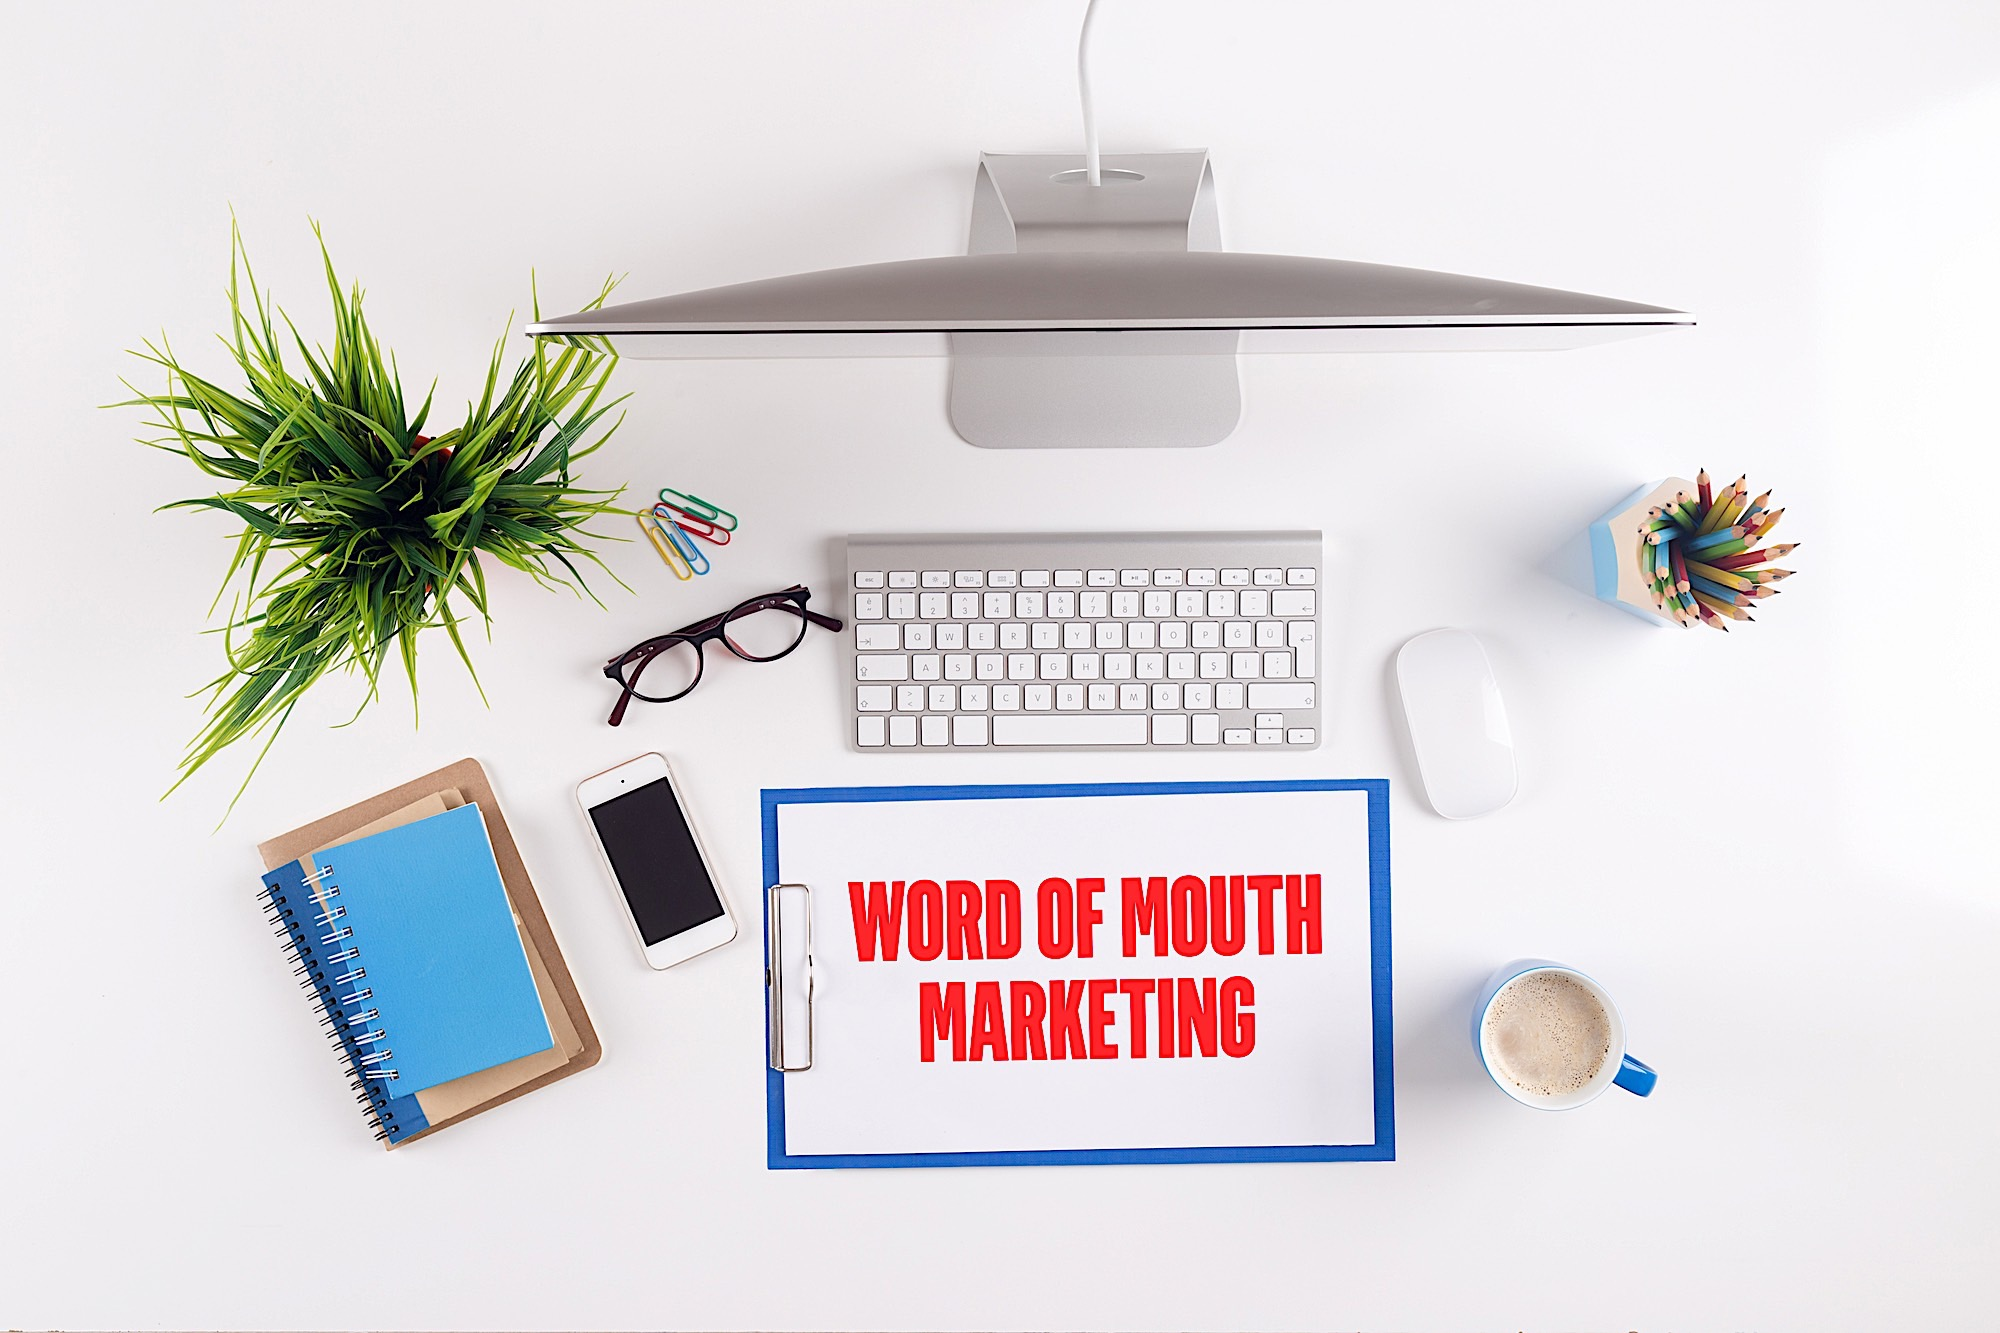 Word of mouth marketing definition